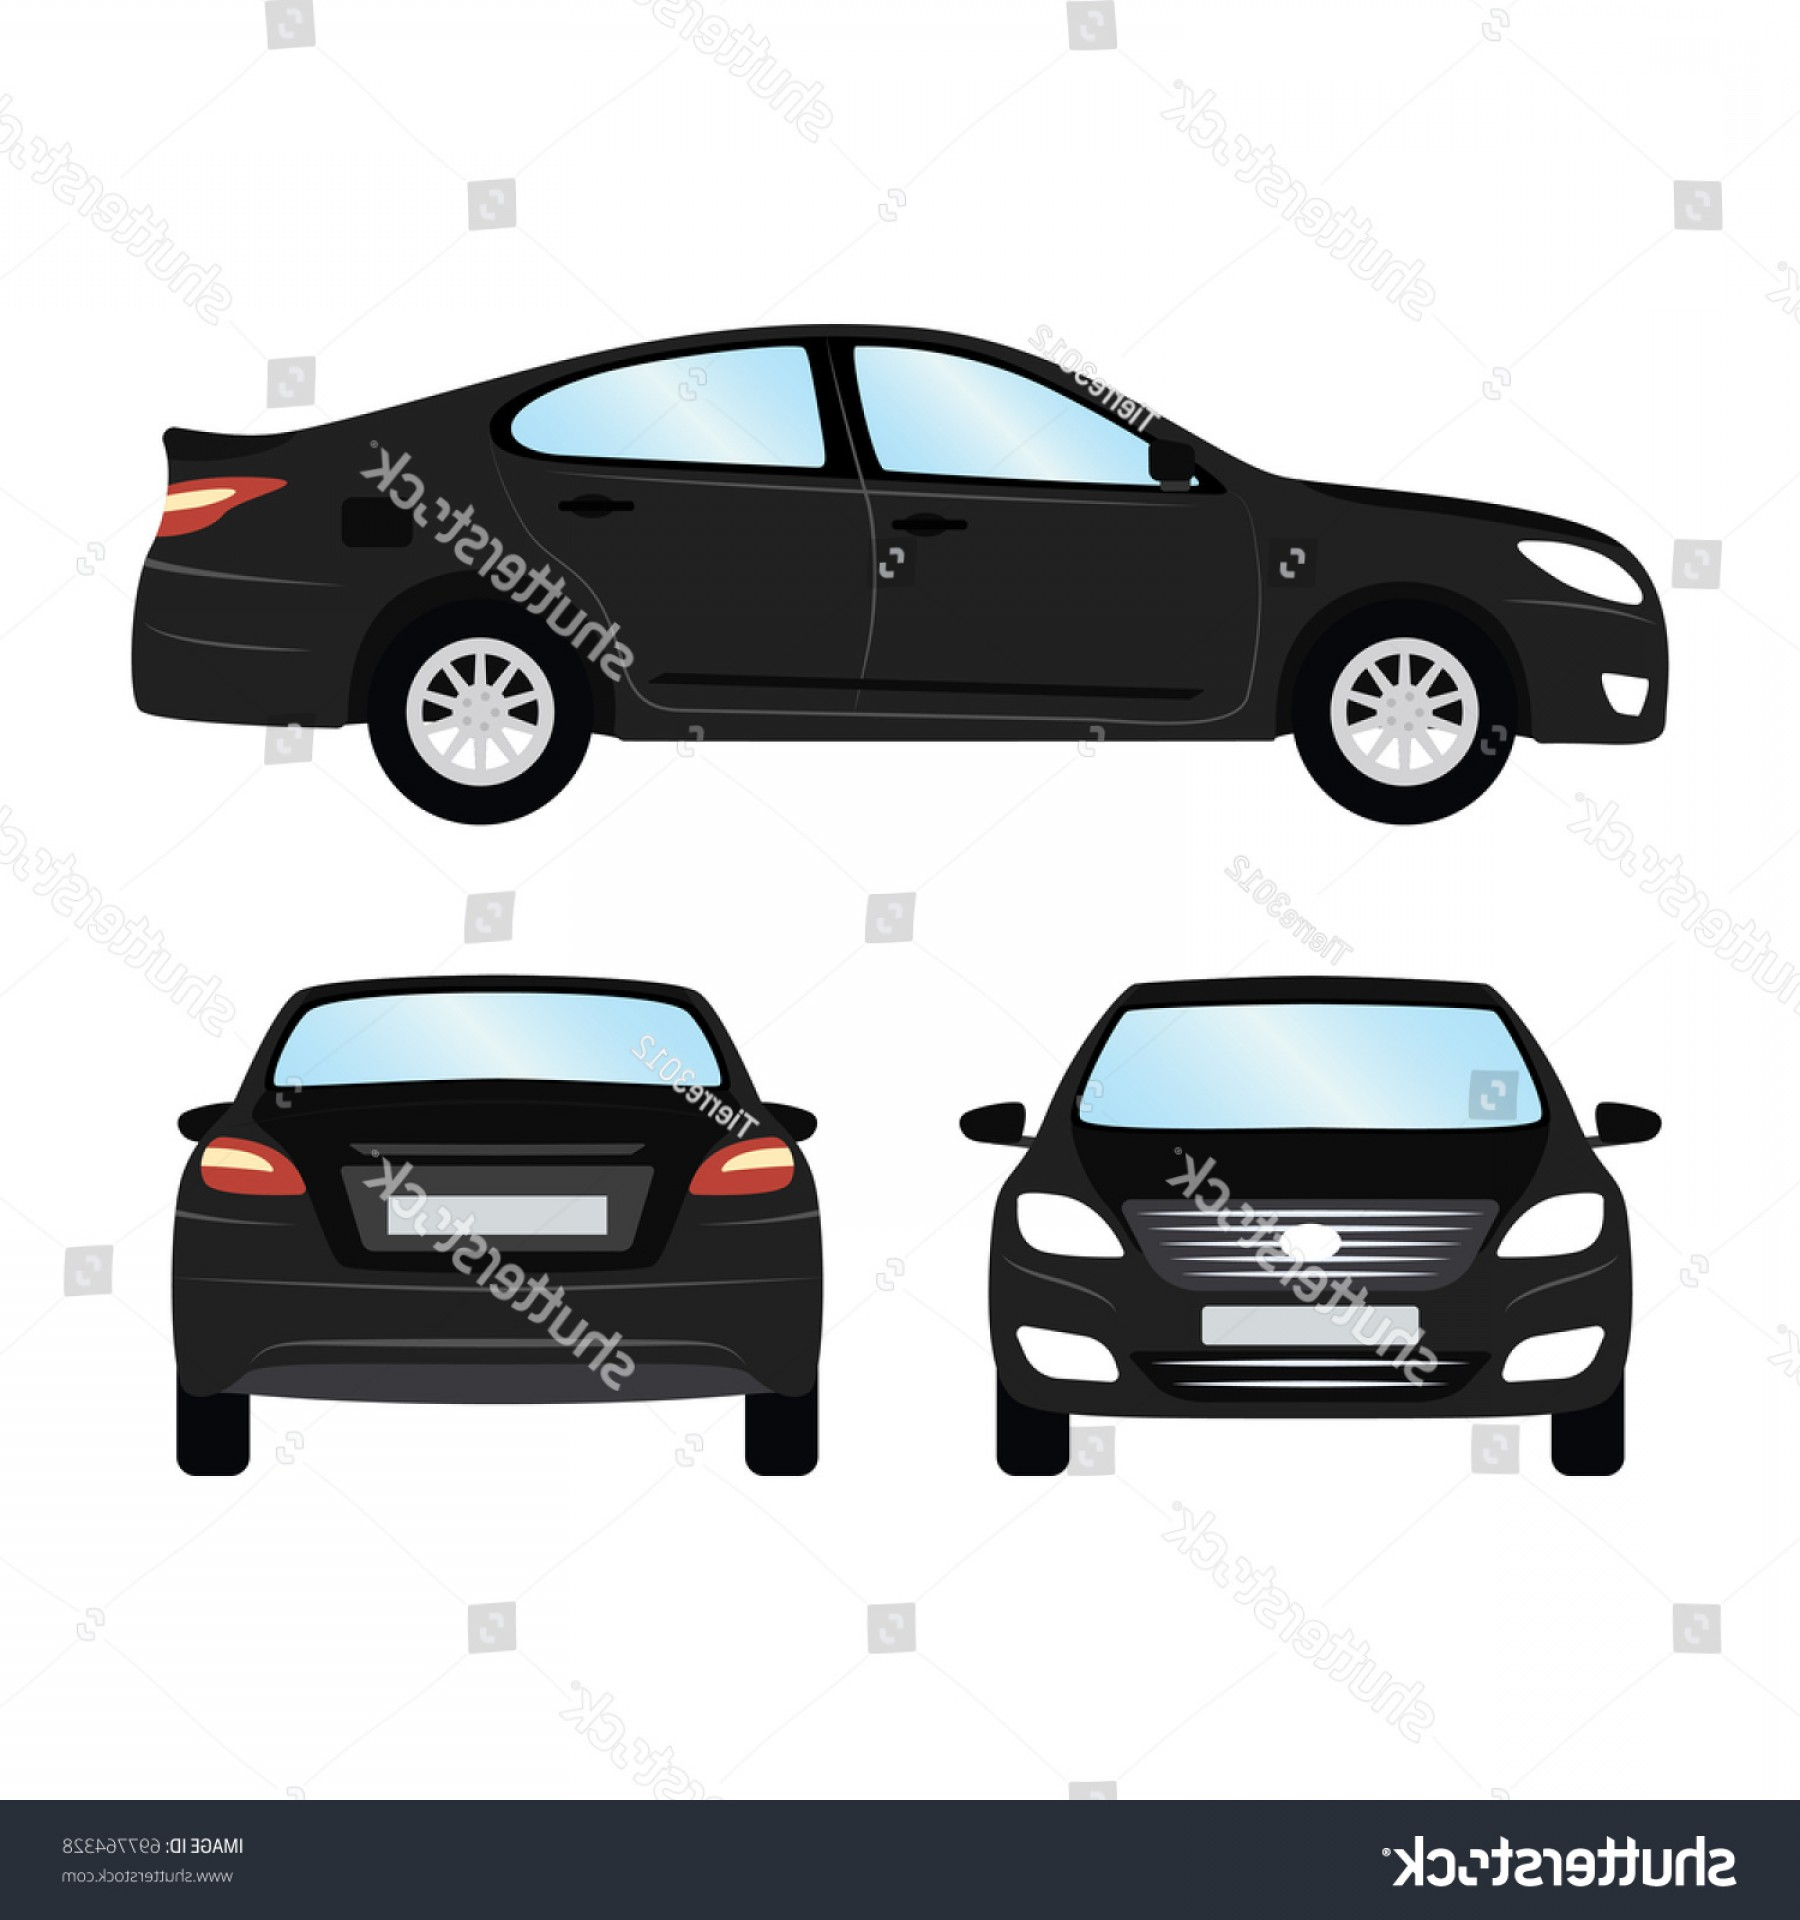 SUV Car Elevation Vector: Car Vector Template On White Background